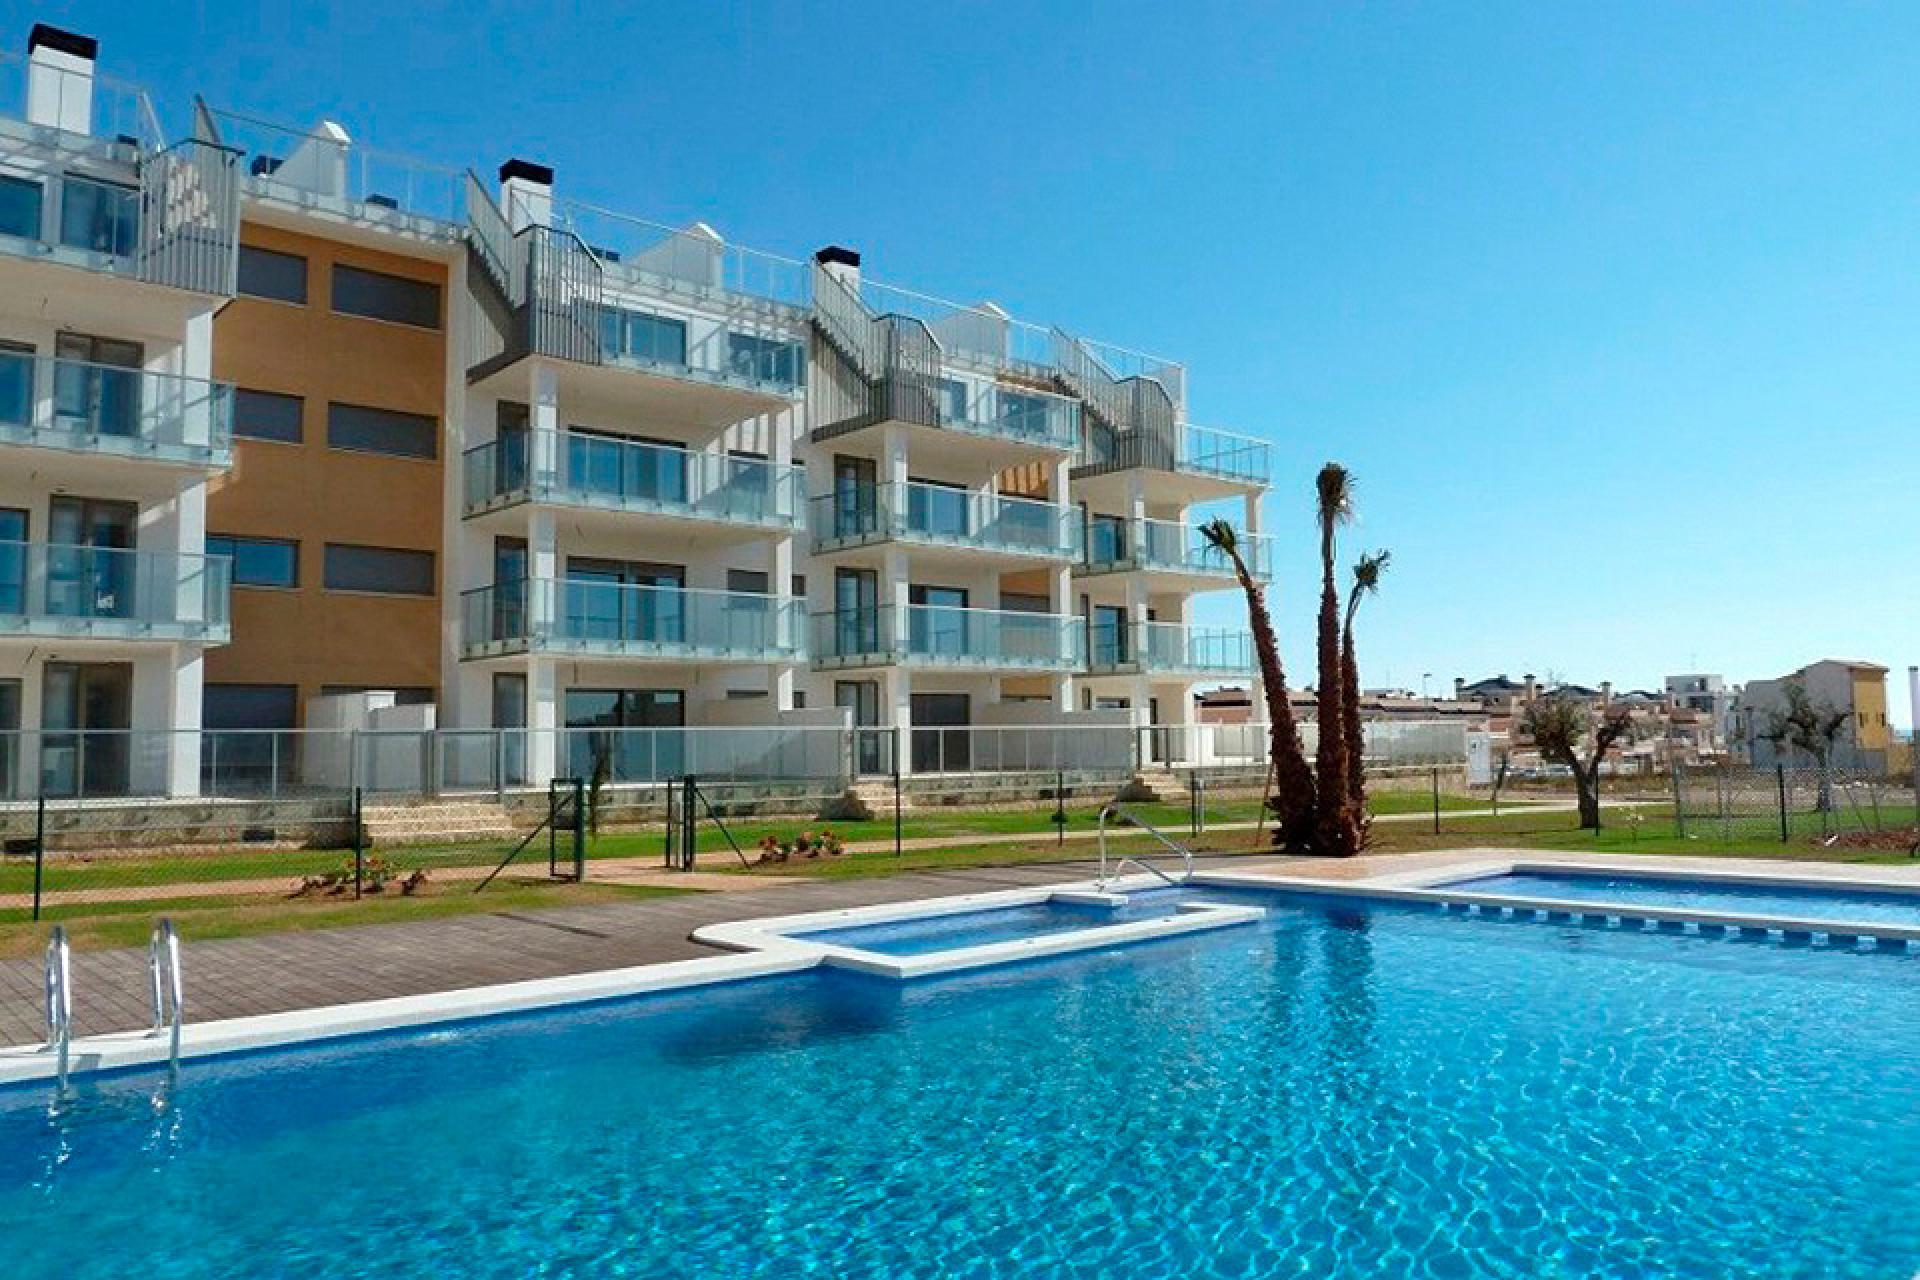 Apartment in Villamartin (Alicante)